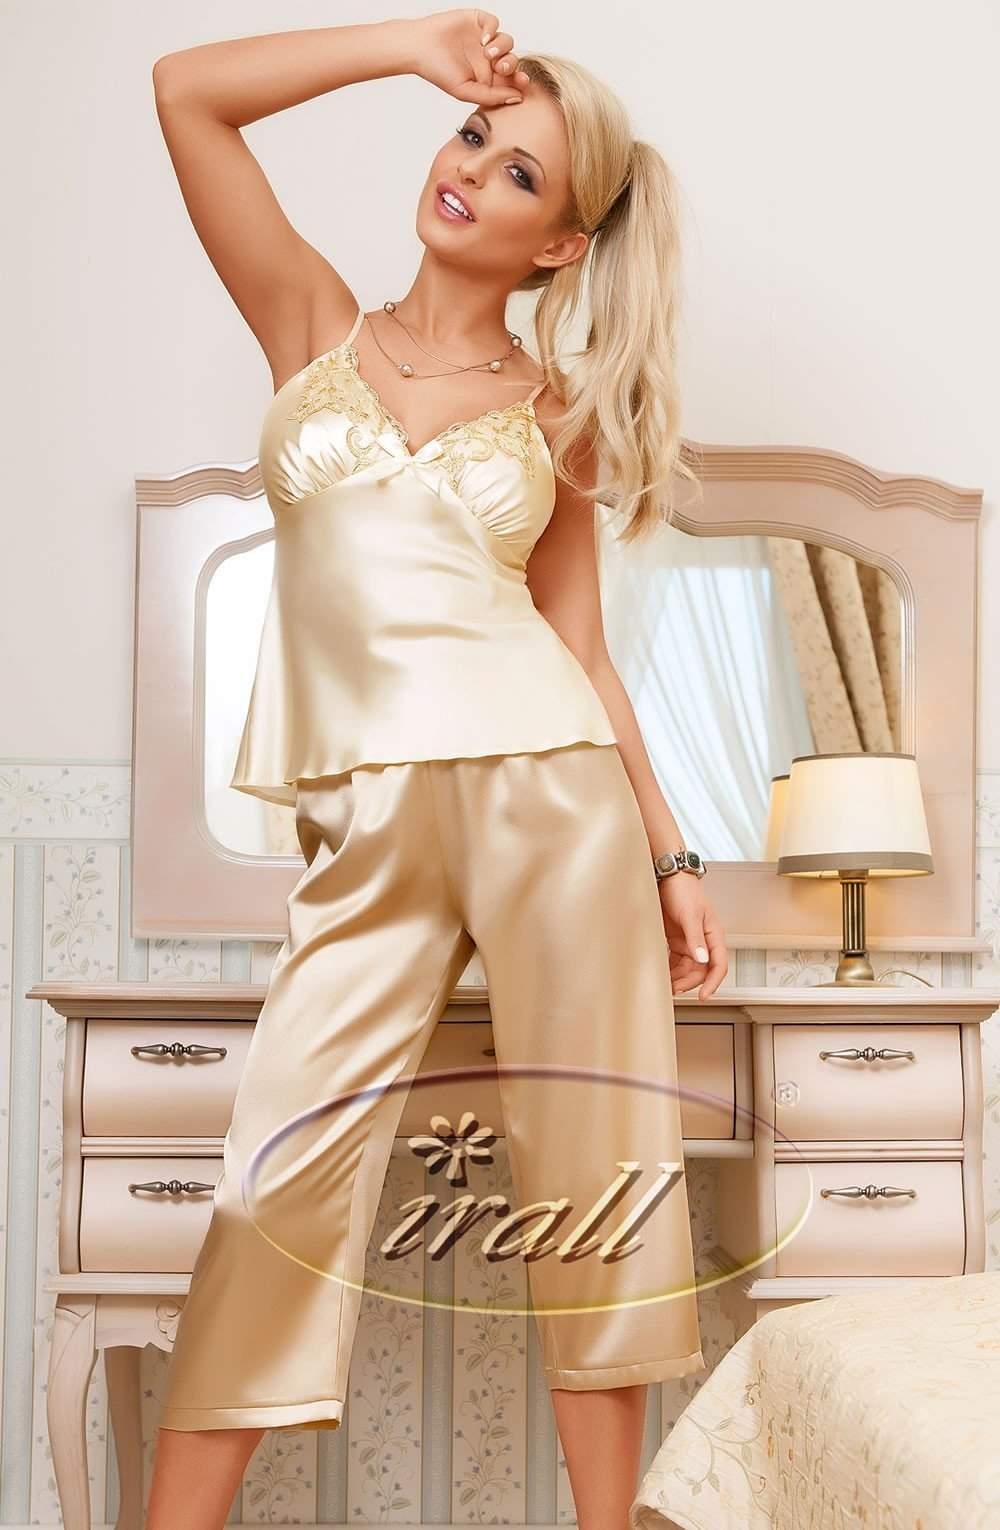 Parisa Pajamas by Irall - Irall - Katys Boutique Lingerie USA